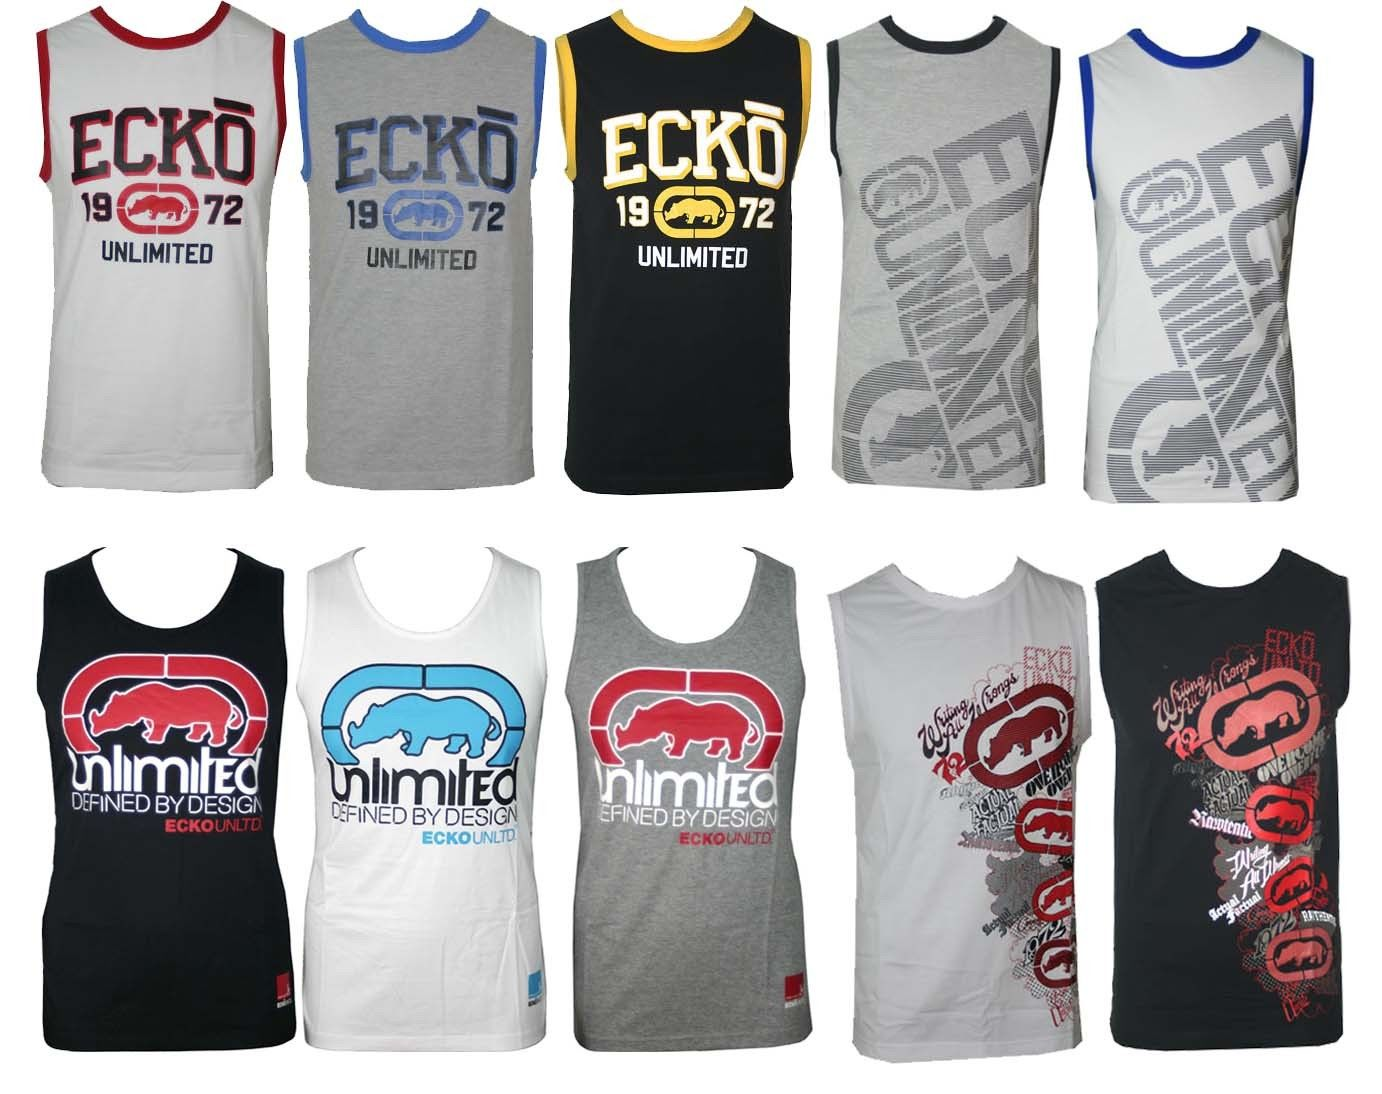 NEW-MENS-ECKO-VEST-GREY-WHITE-BLACK-CREW-NECK-SIZE-S-M-L-XL-XXL